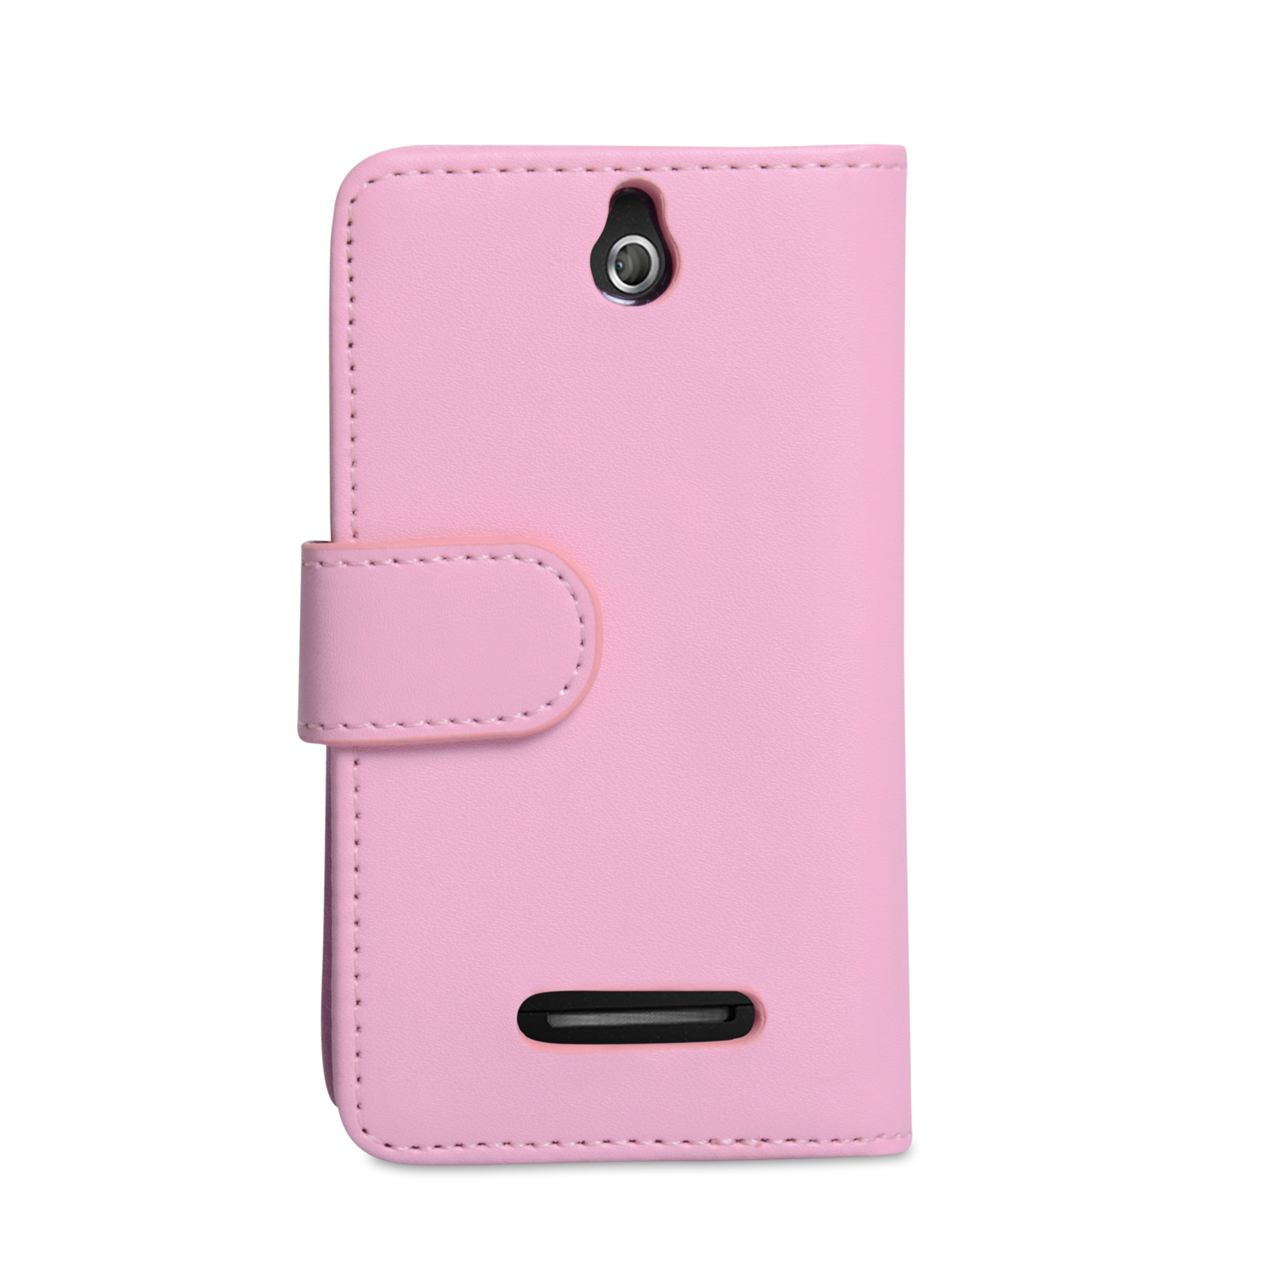 YouSave Accessories Sony Xperia E Leather Wallet Case - Baby Pink